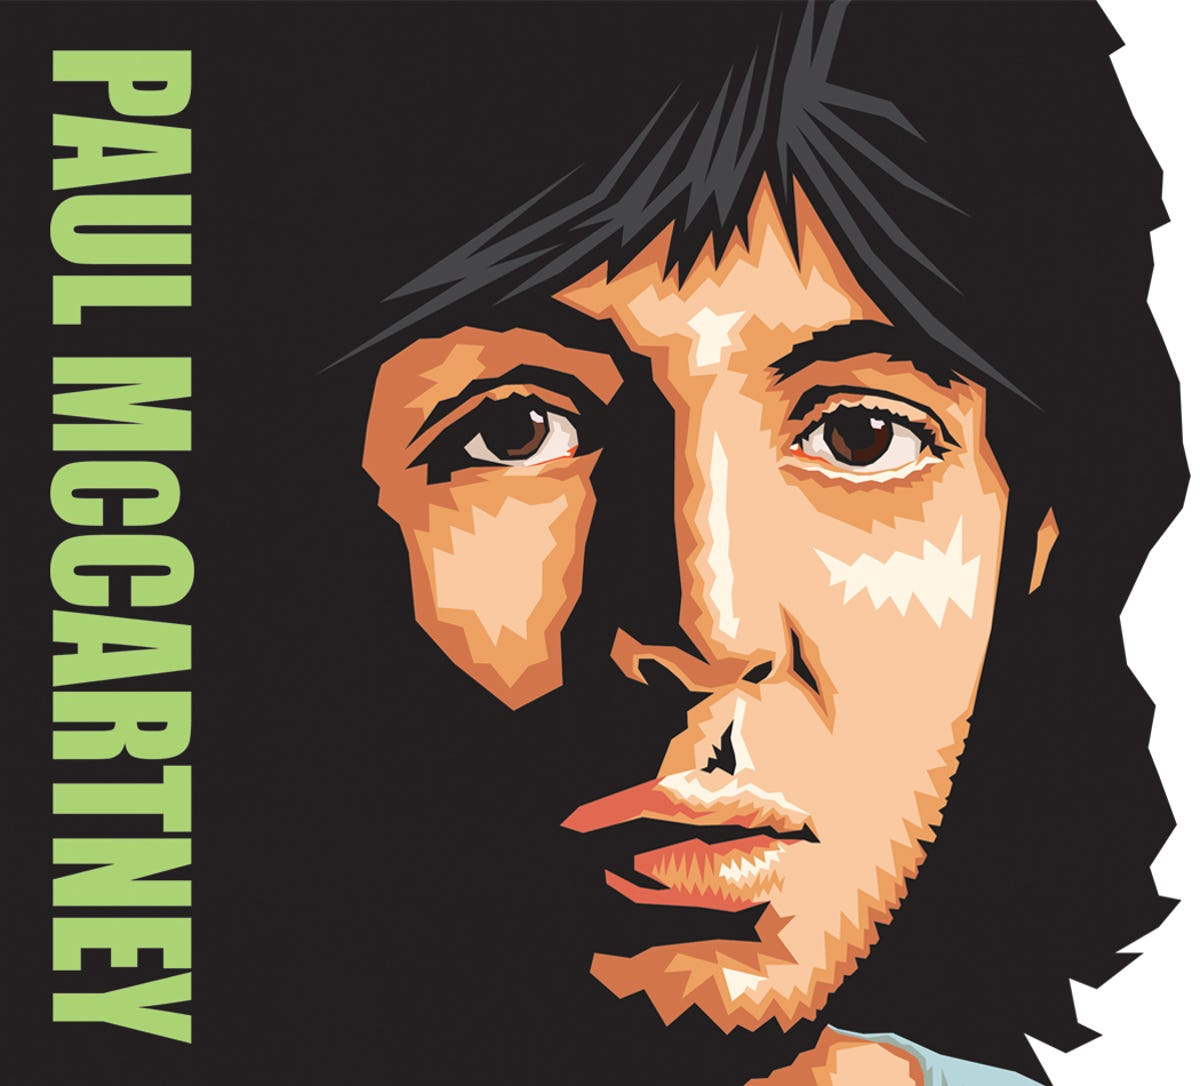 In defense of Paul McCartney's solo career